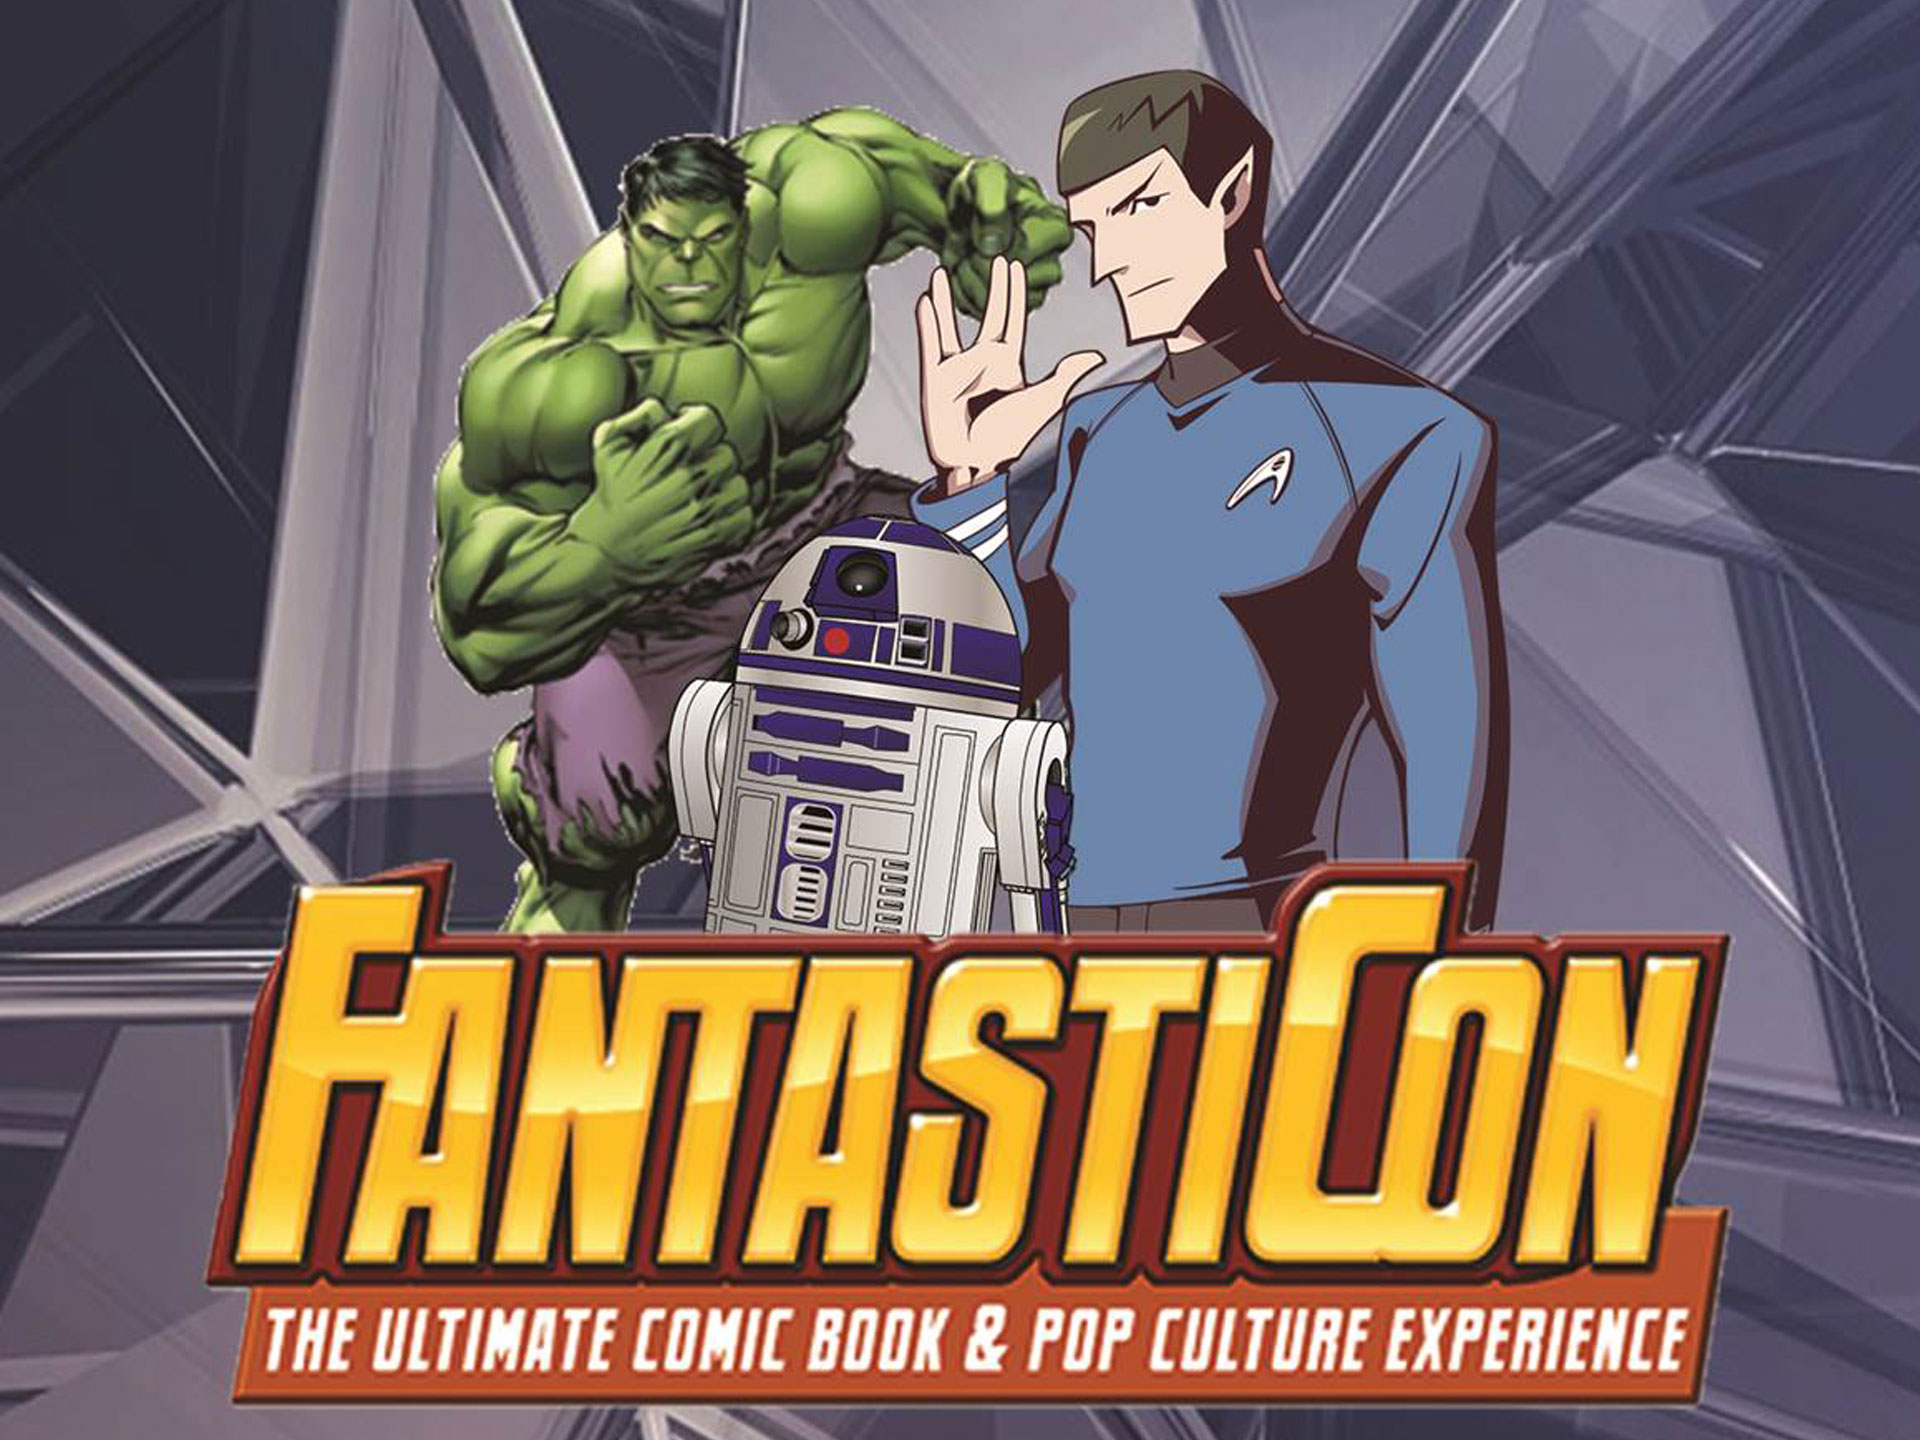 Image for FANTASTICON S7-EP22 - Saturday, October 19, 2019